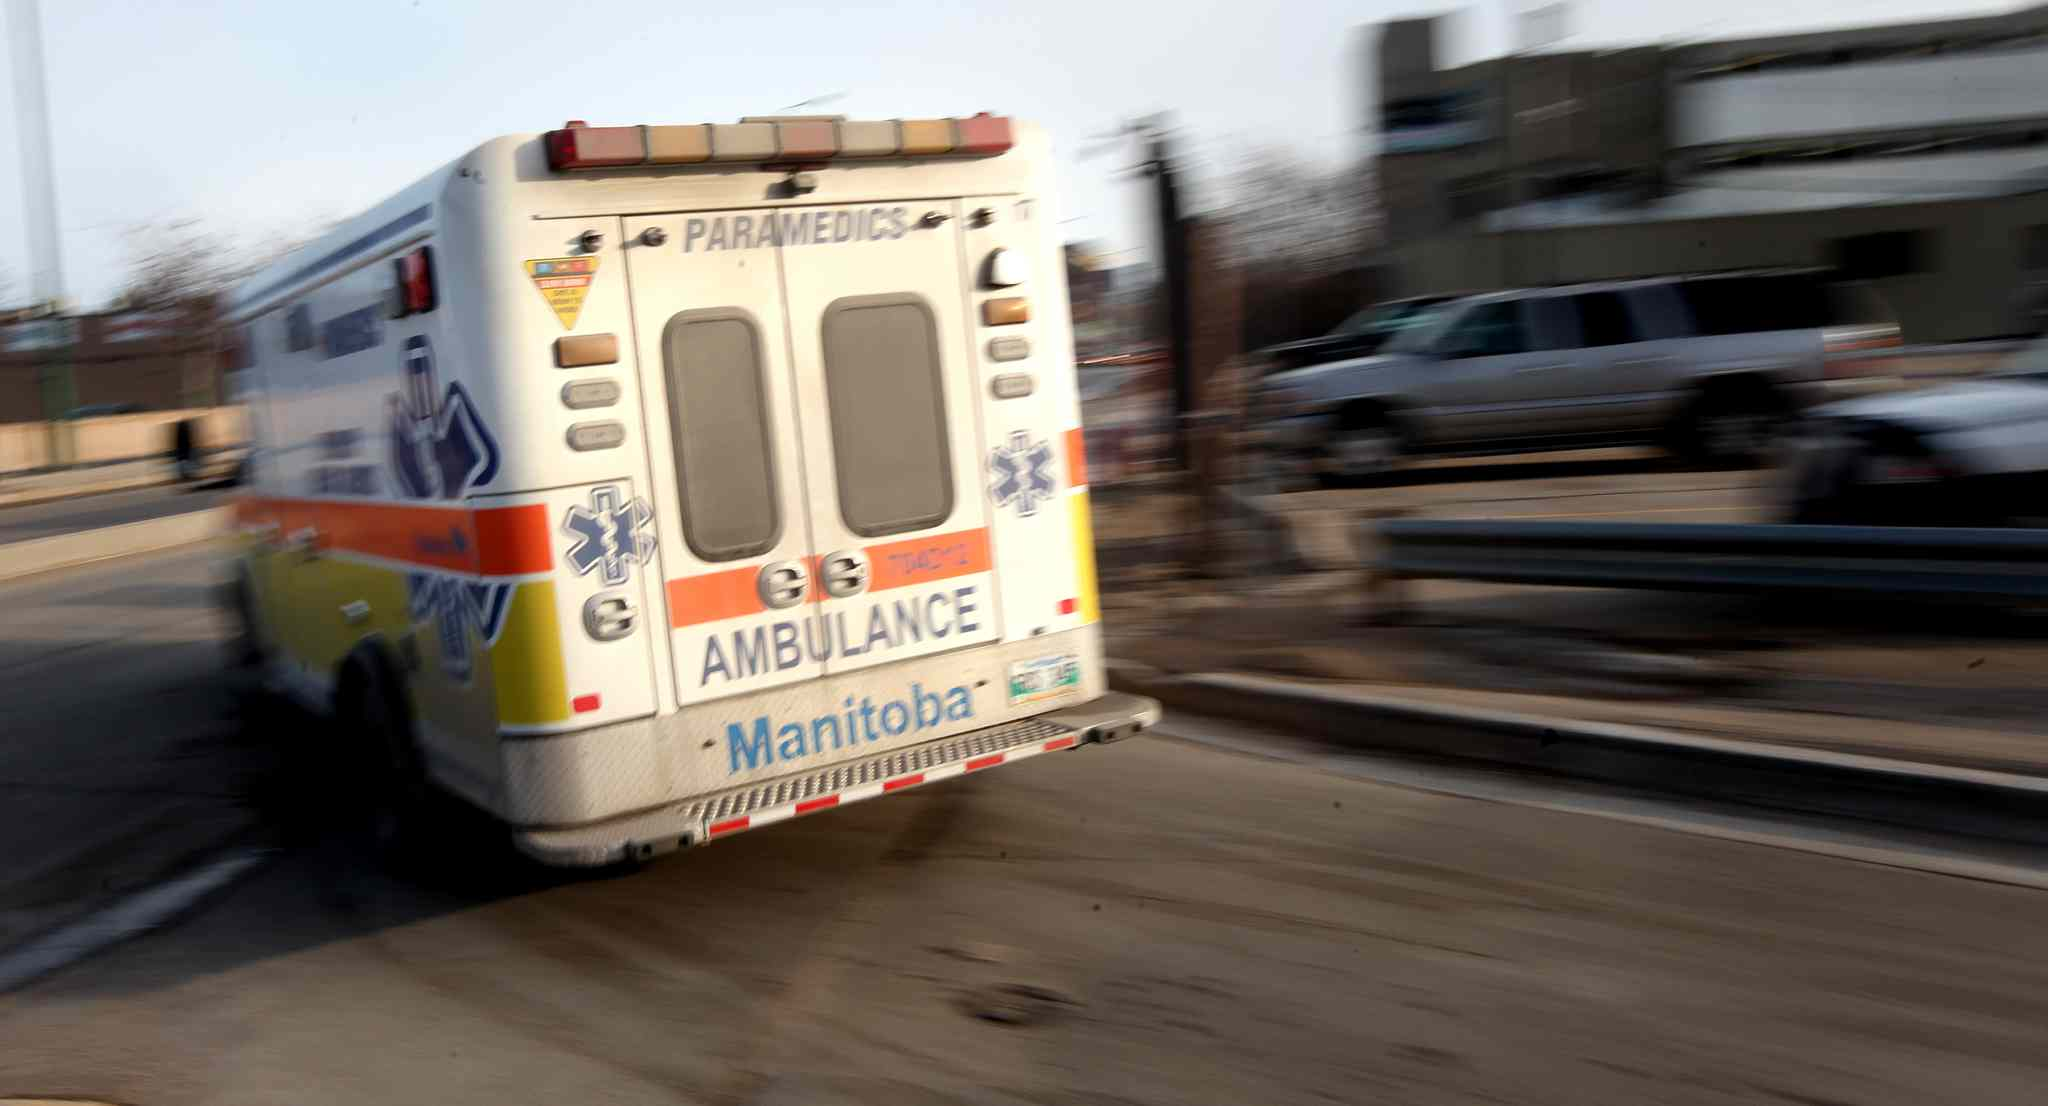 The Paramedic Association of Manitoba joined with CAA Manitoba to criticize potholes and deteriorating roads in Winnipeg and the province. The association said it's so bad that paramedics are having diffculty treating and monitoring patients on their way to hospital.